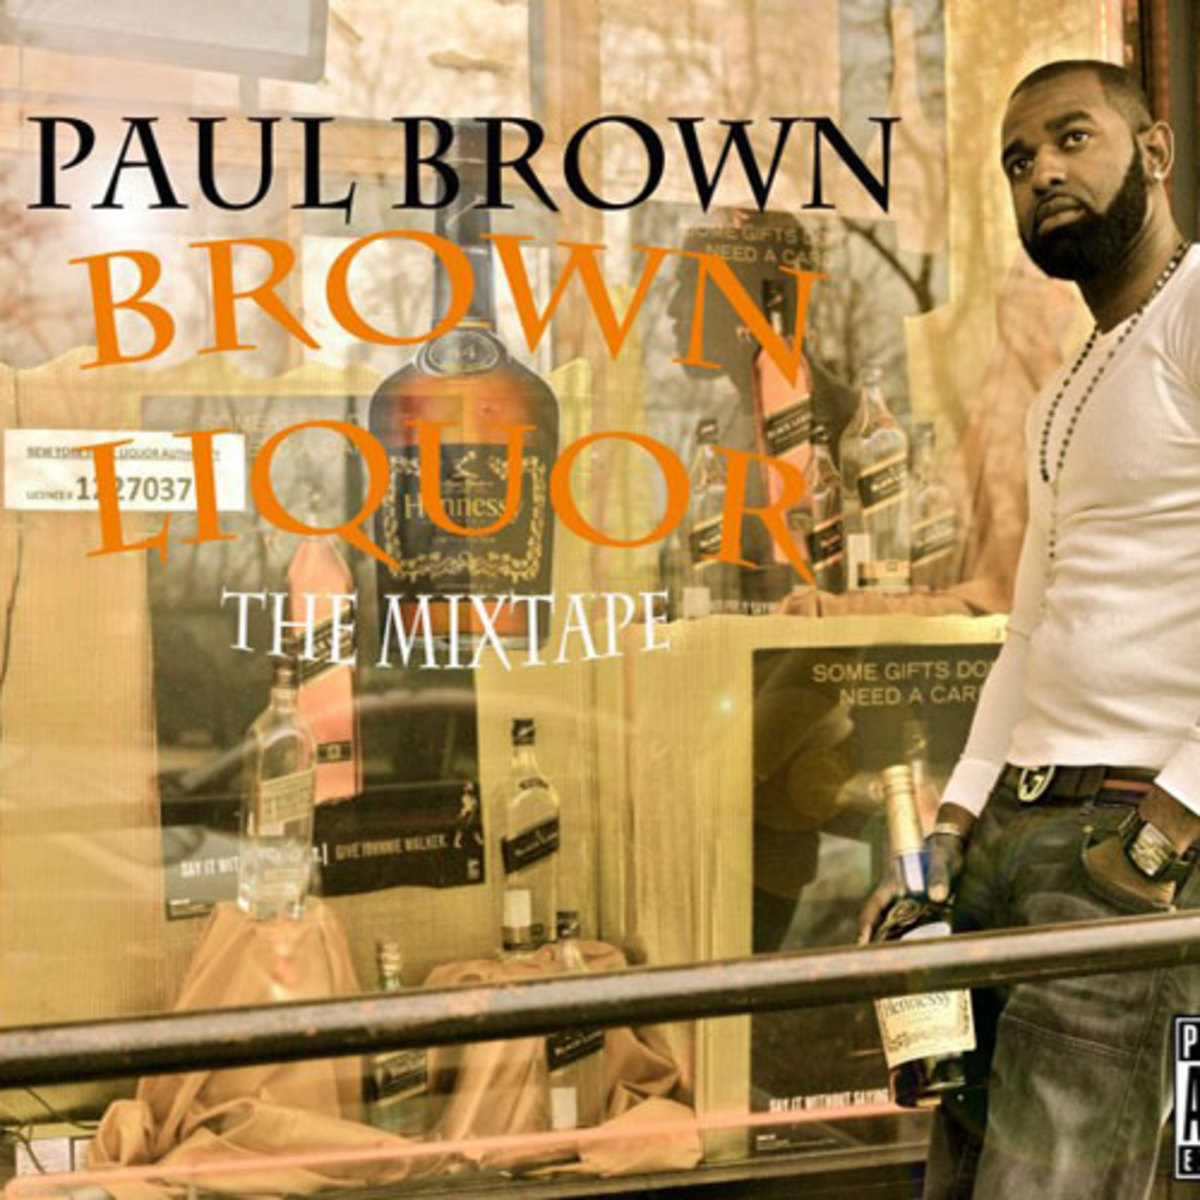 paulbrown-brownliquor.jpg